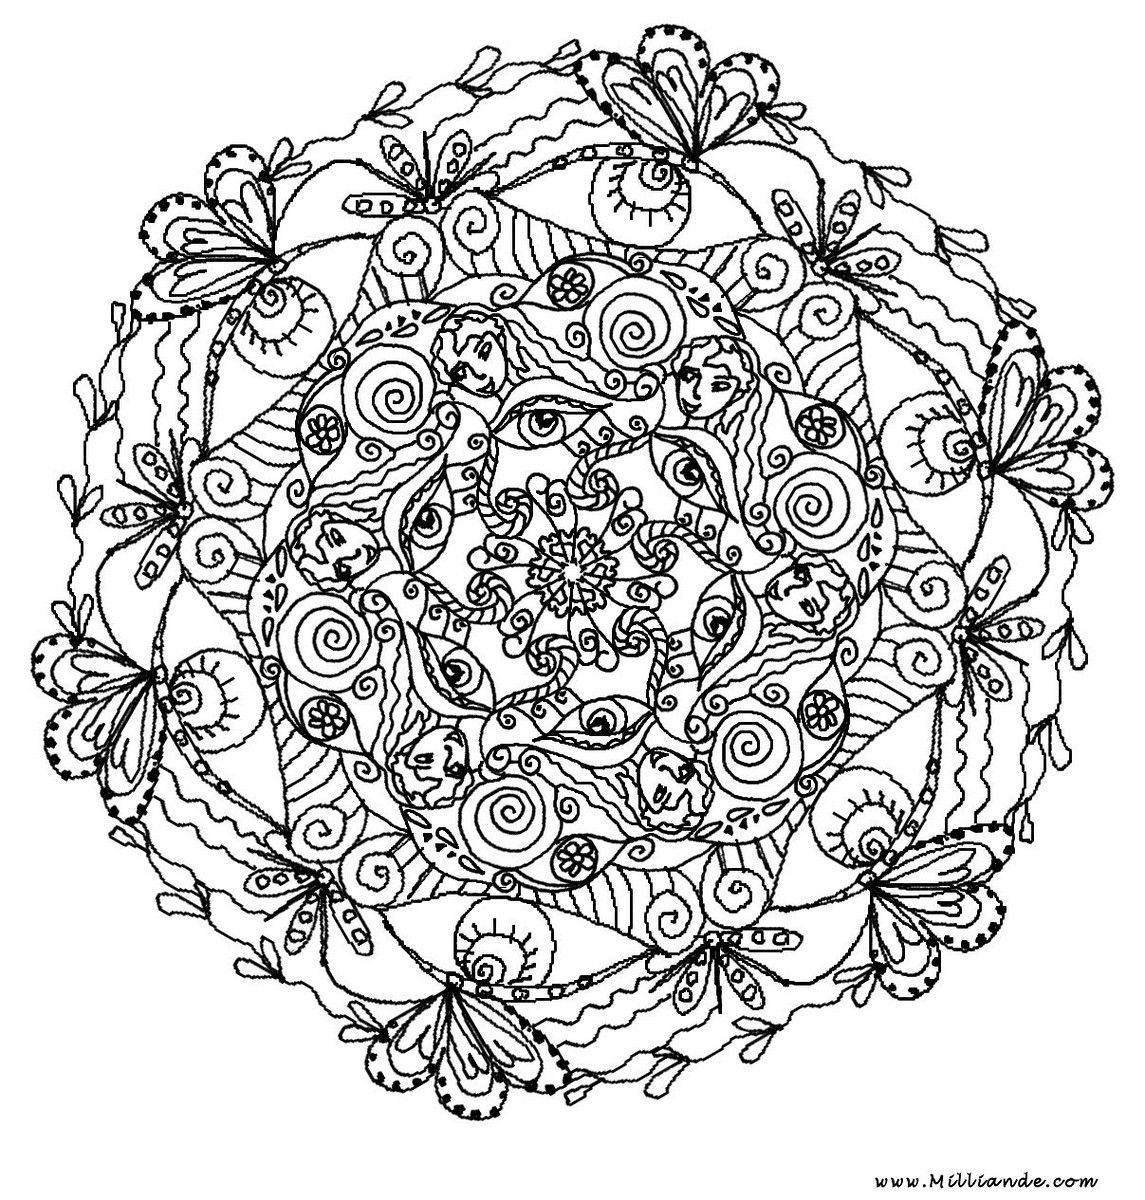 Butterfly coloring page symmetry - Center Yourself With Mandalas Coloring Pages